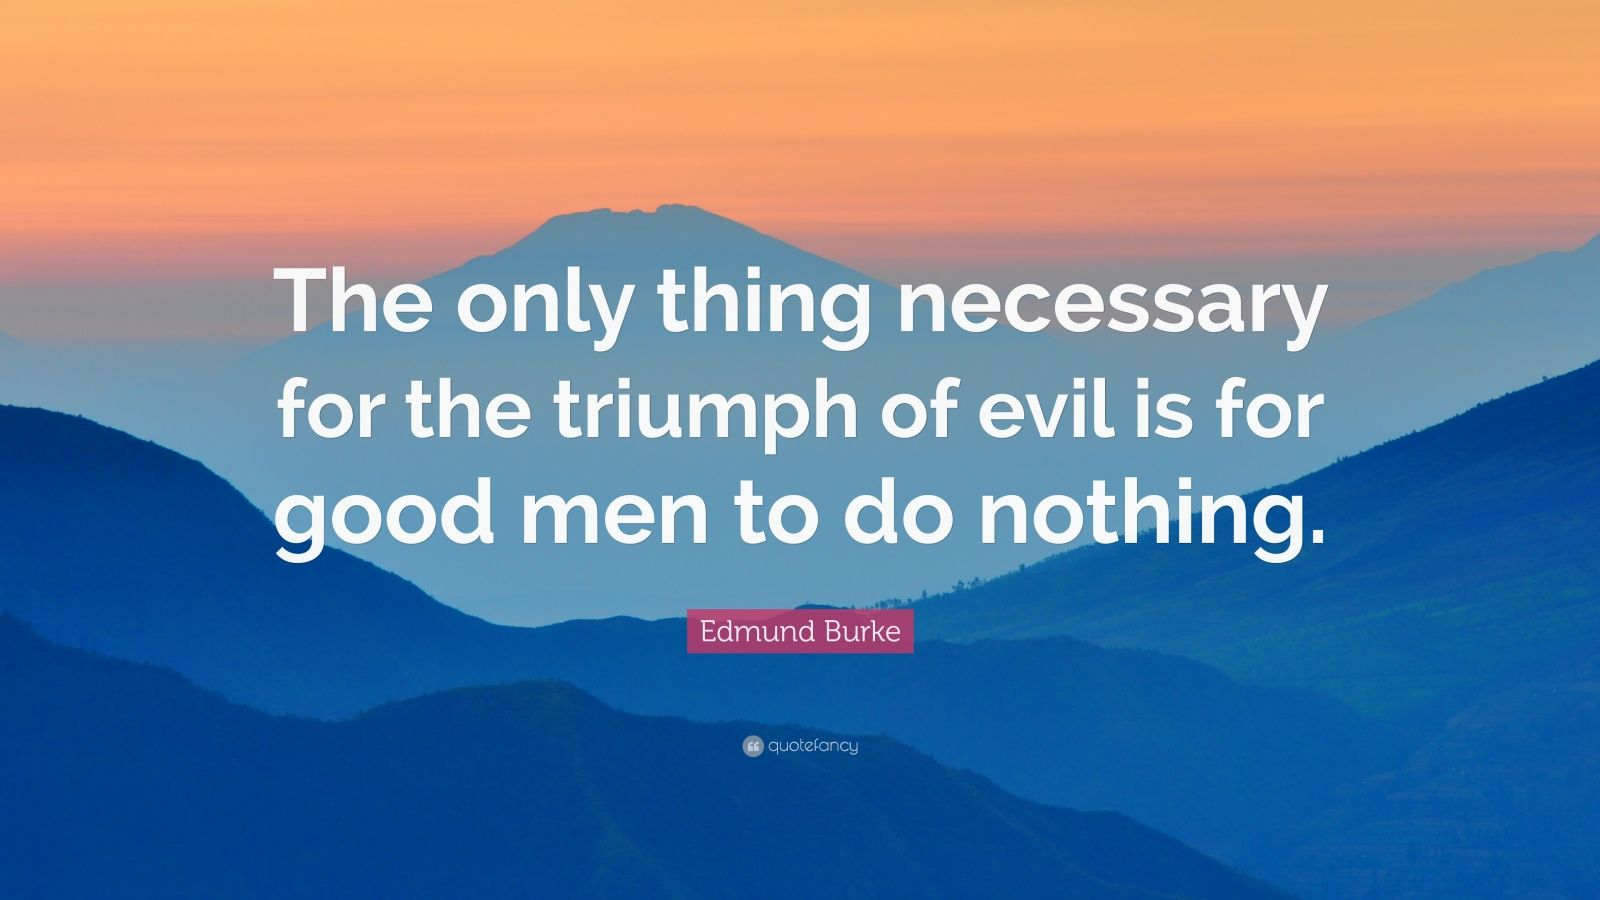 The Only Thing Necessary For The Triumph Of Evil Is For Good Men To Do Nothing 102